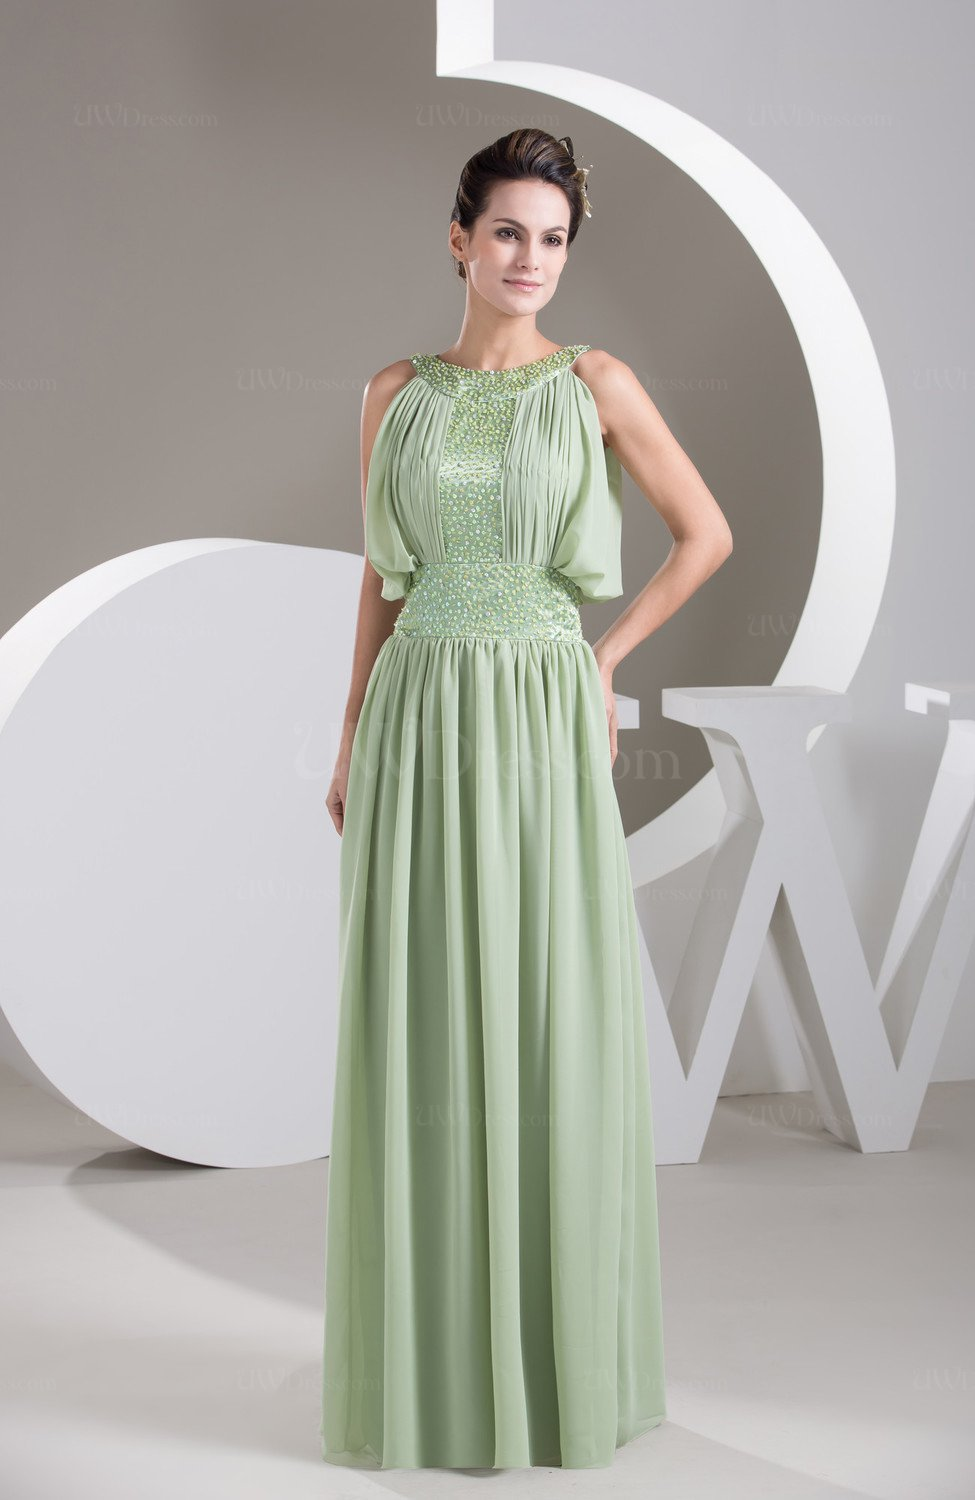 Sage Green Vintage Party Dress Long Traditional Chic